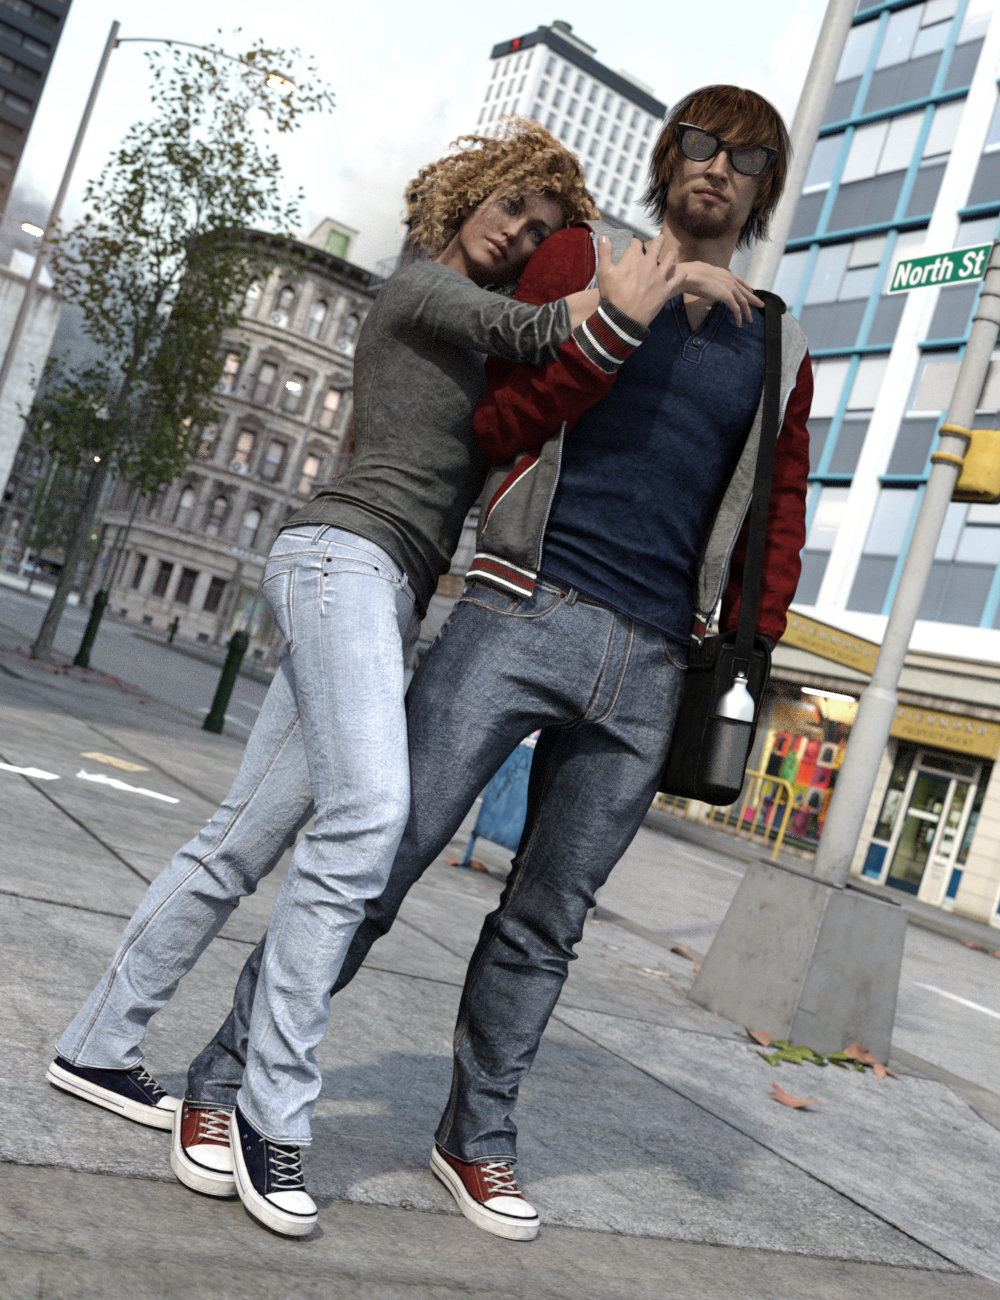 Urban Survivors for Genesis 3 Male(s) and Female(s) by: Luthbel, 3D Models by Daz 3D